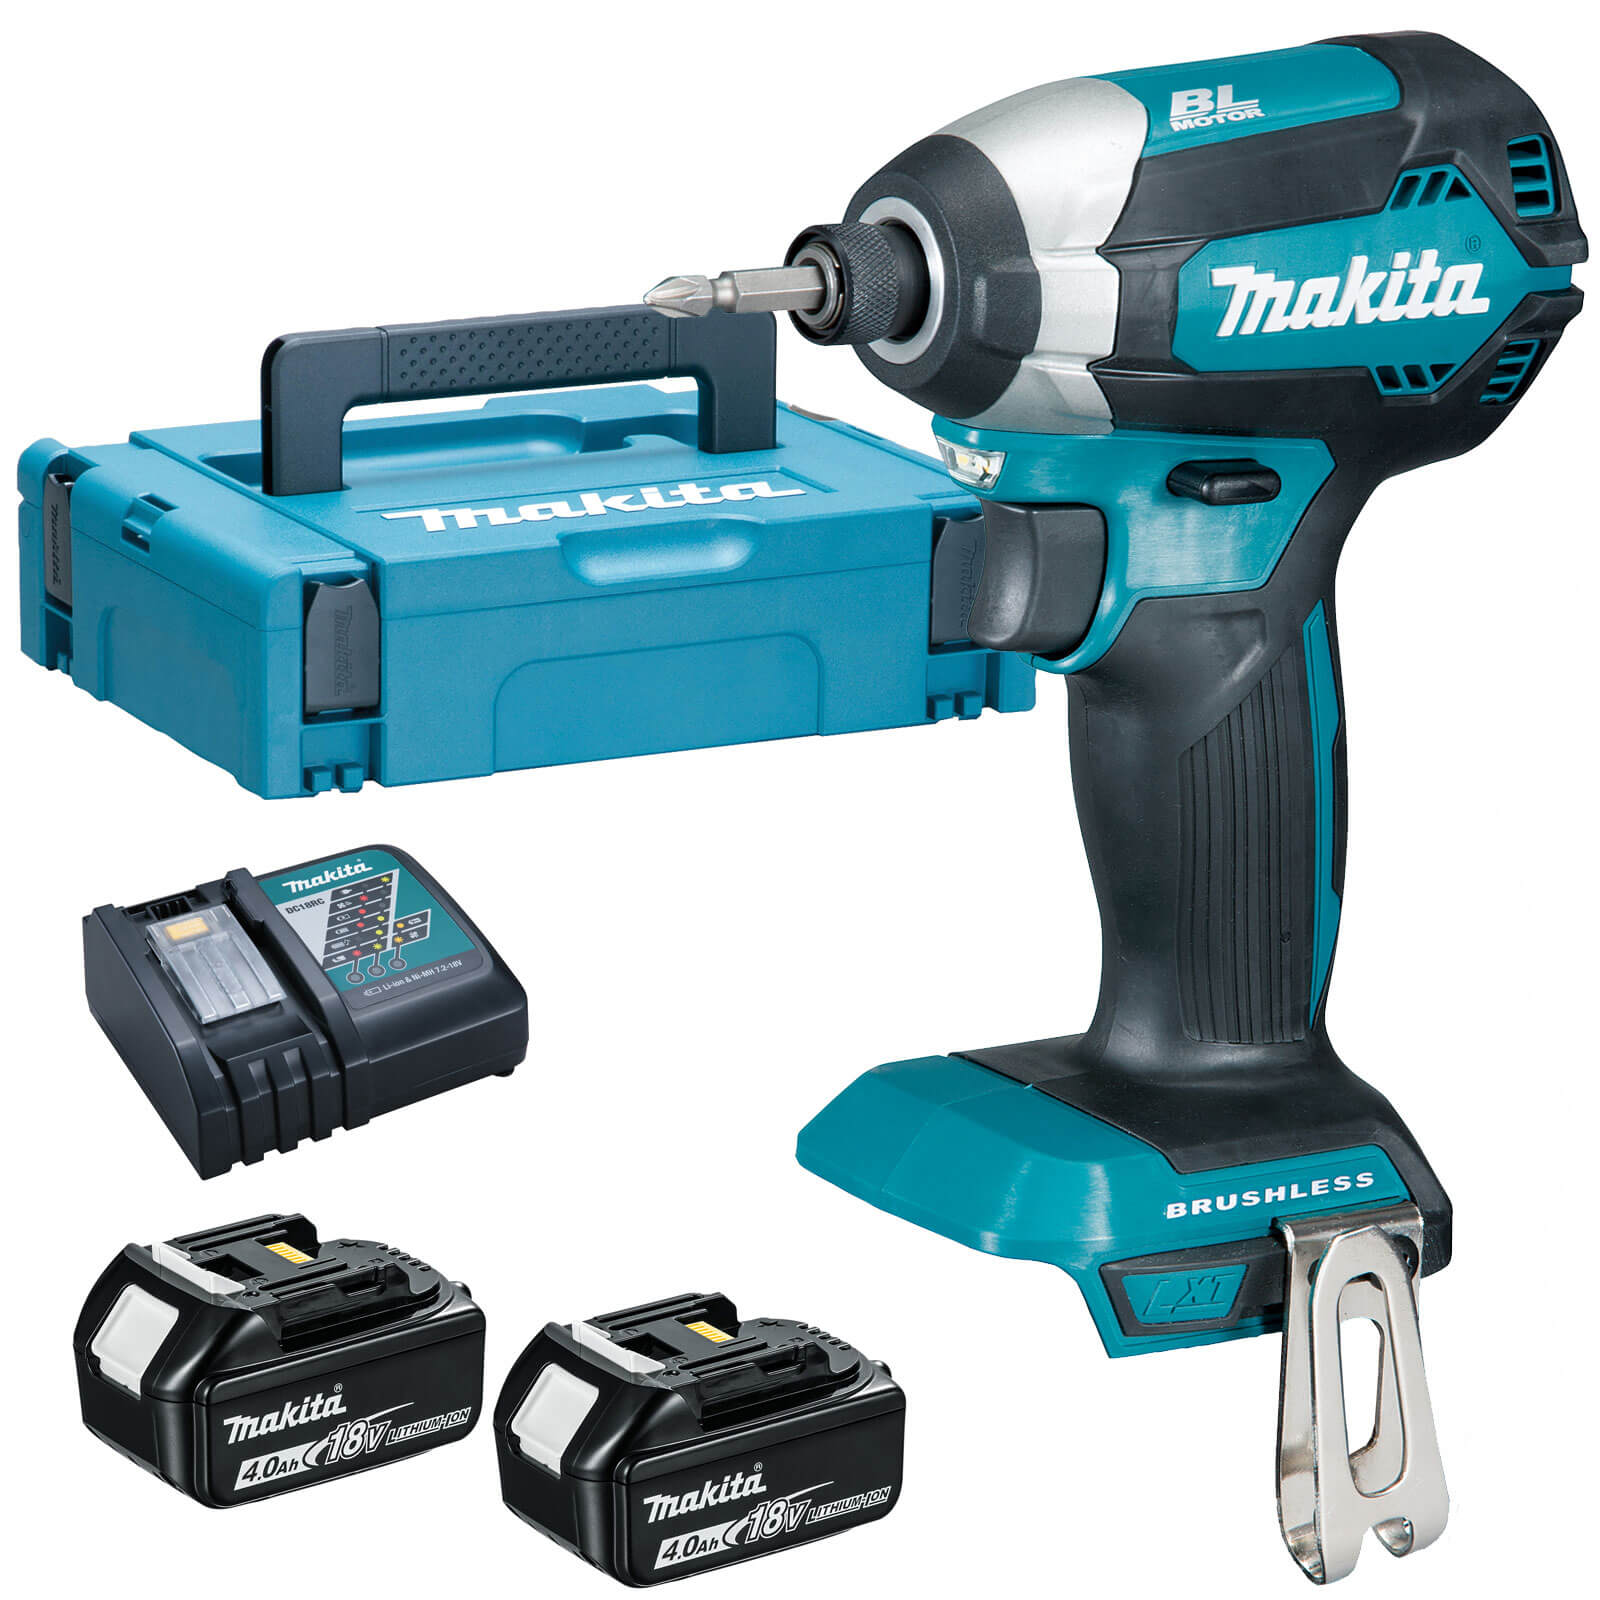 makita dtd153 18v cordless lxt brushless impact driver 2 x 4ah li ion charger case. Black Bedroom Furniture Sets. Home Design Ideas